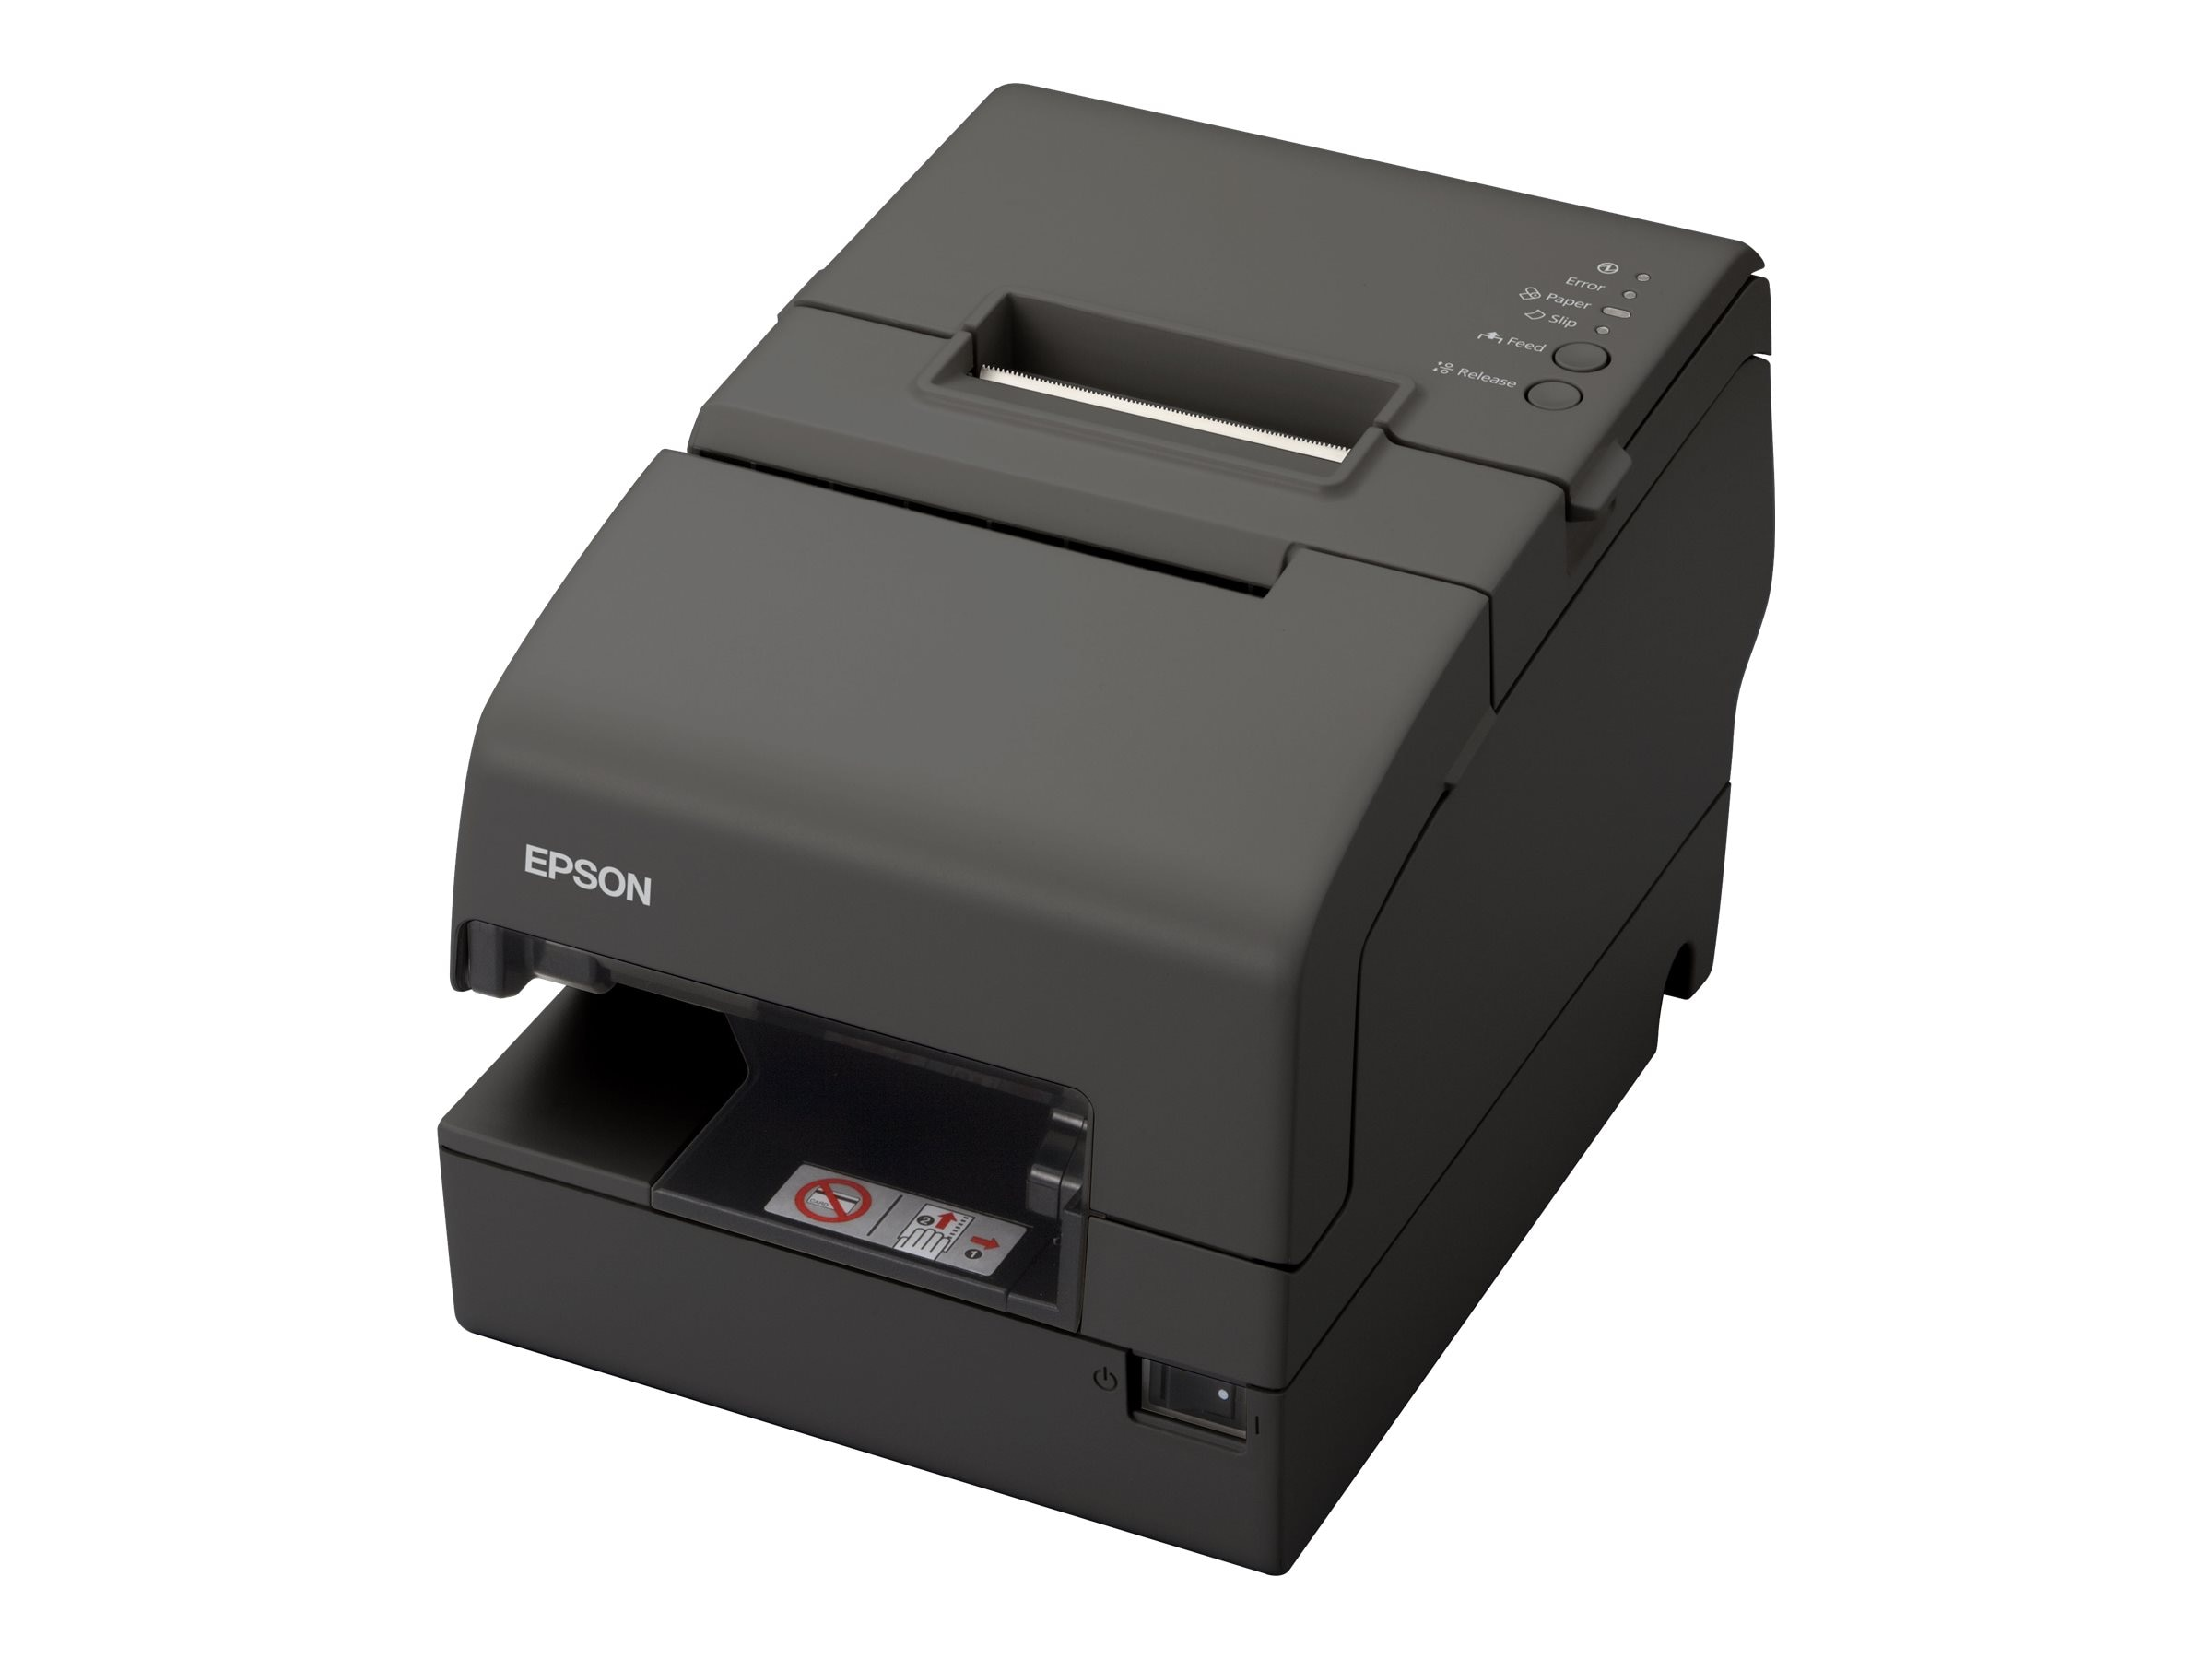 Epson TM-H6000IV MICR Endorsement Serial & USB Multifunction Printer